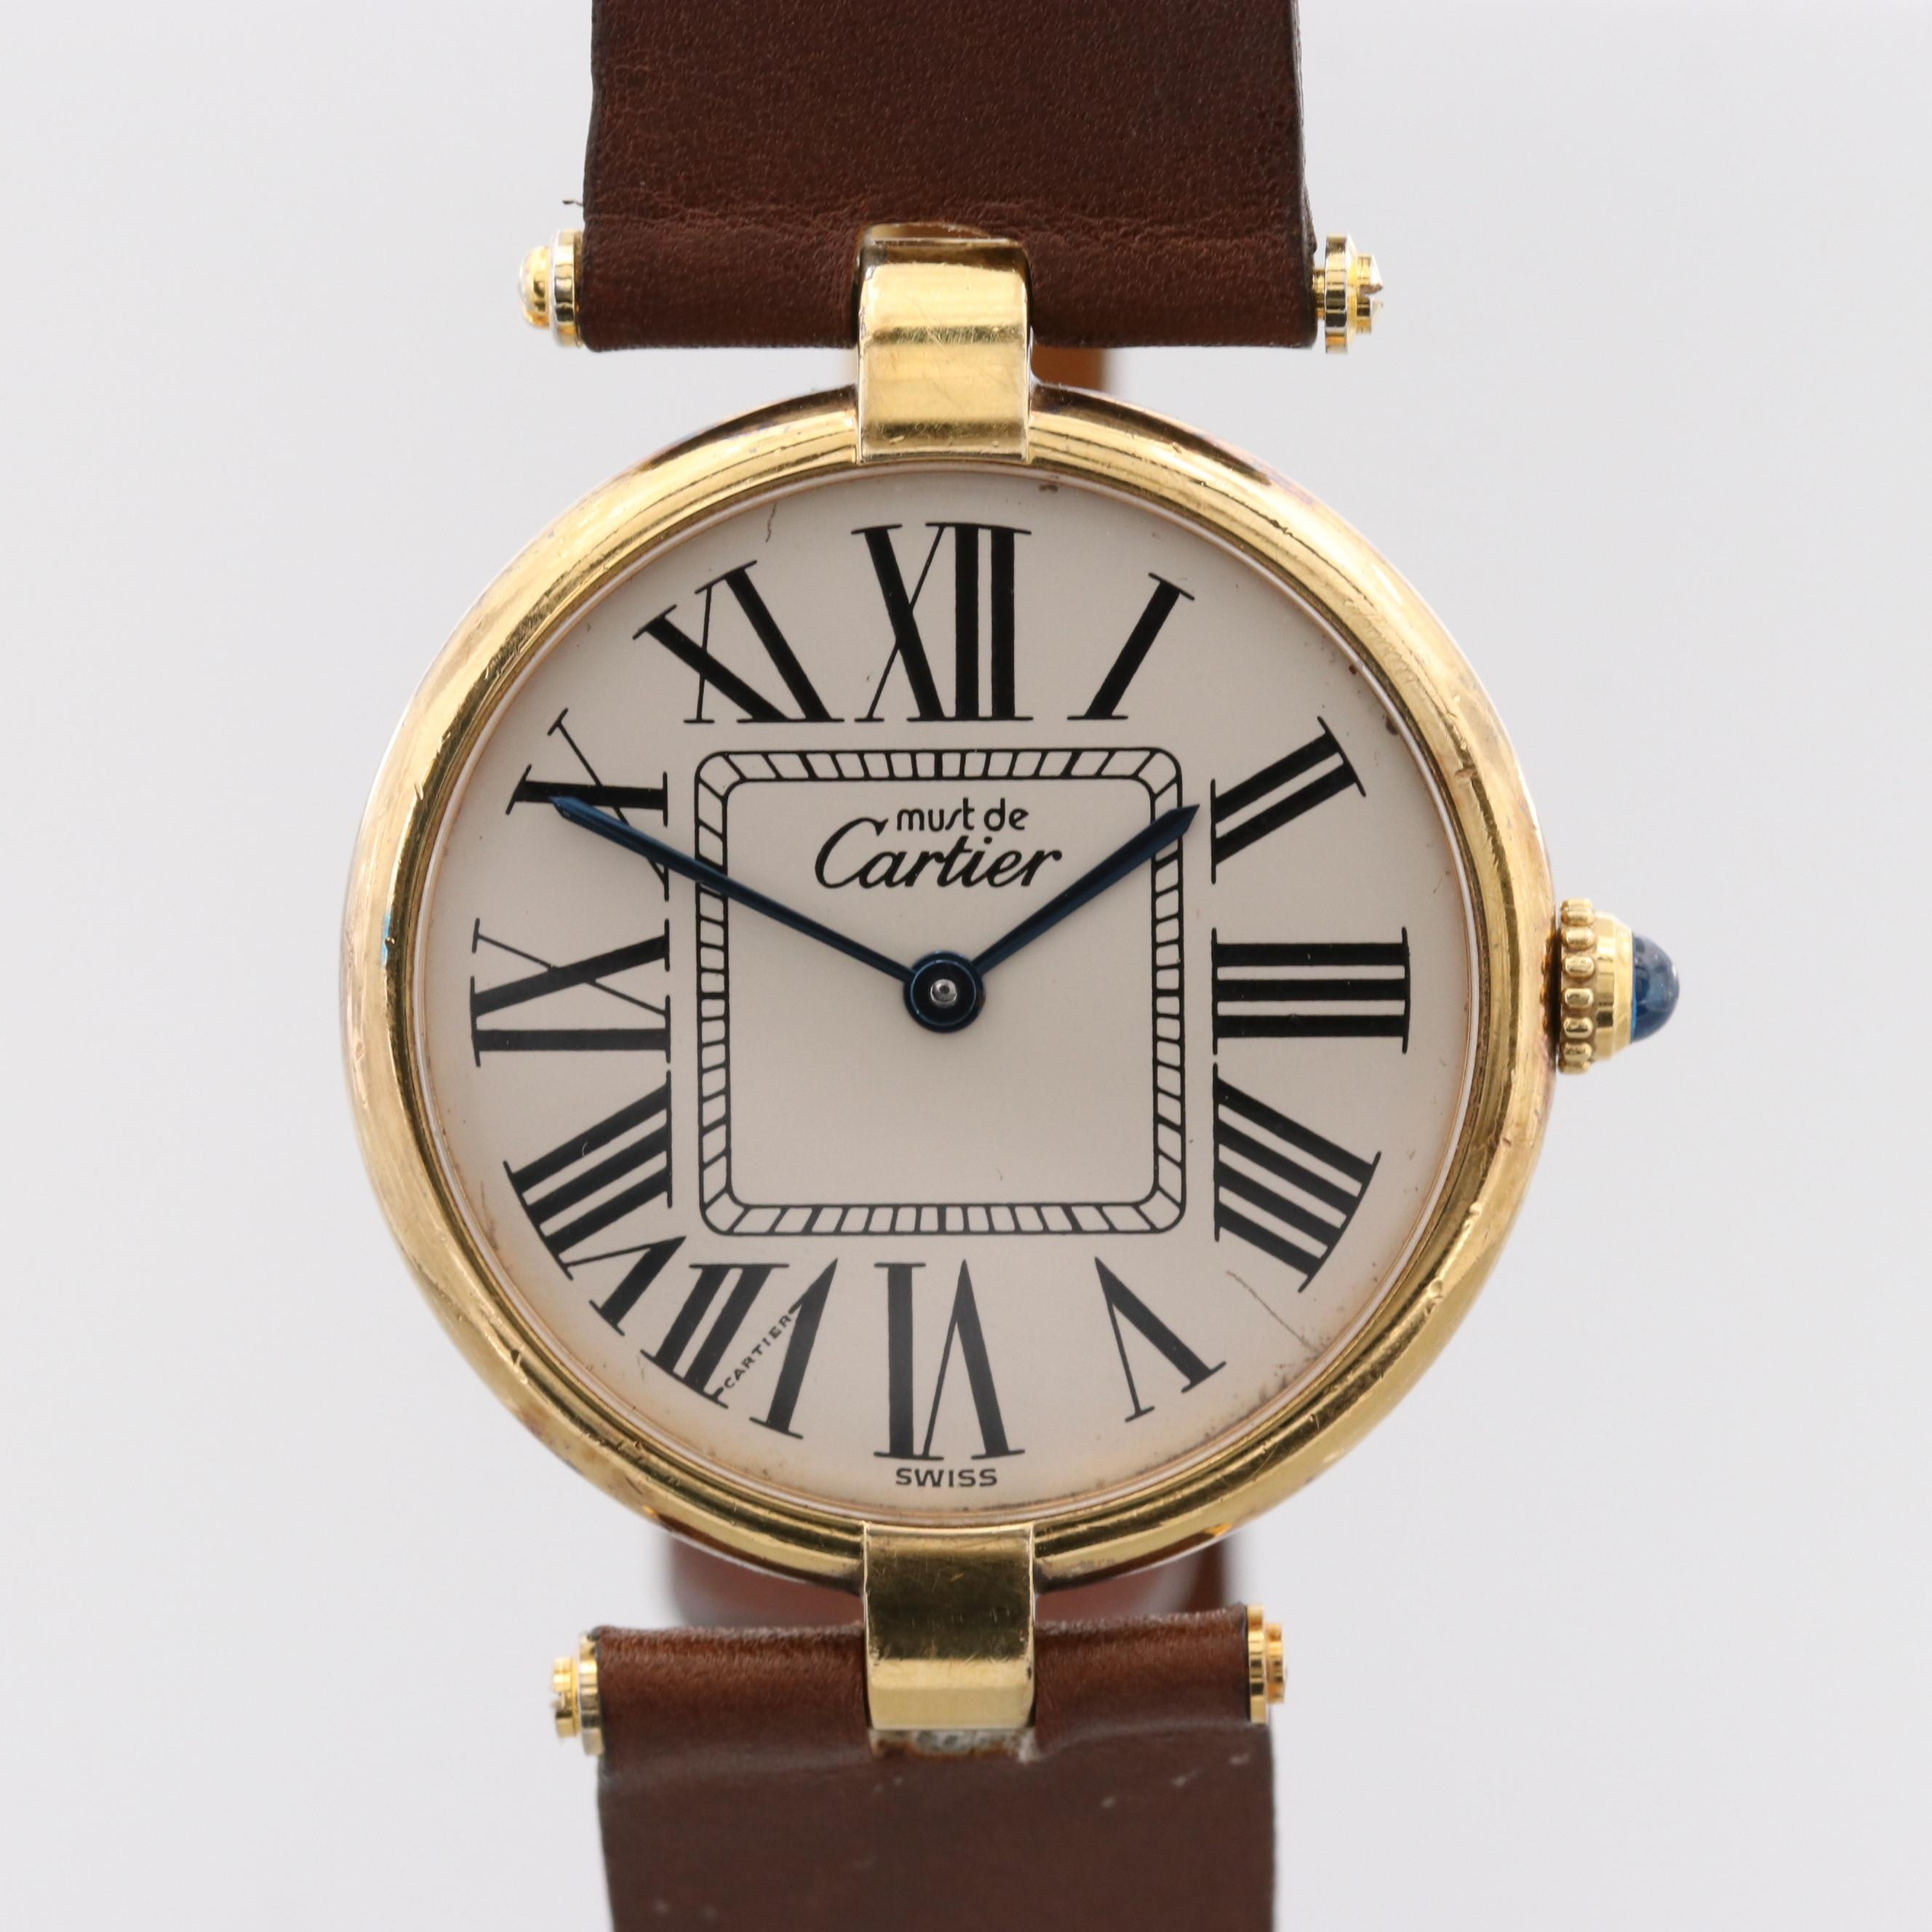 Must de Cartier Vermeil Quartz Wristwatch